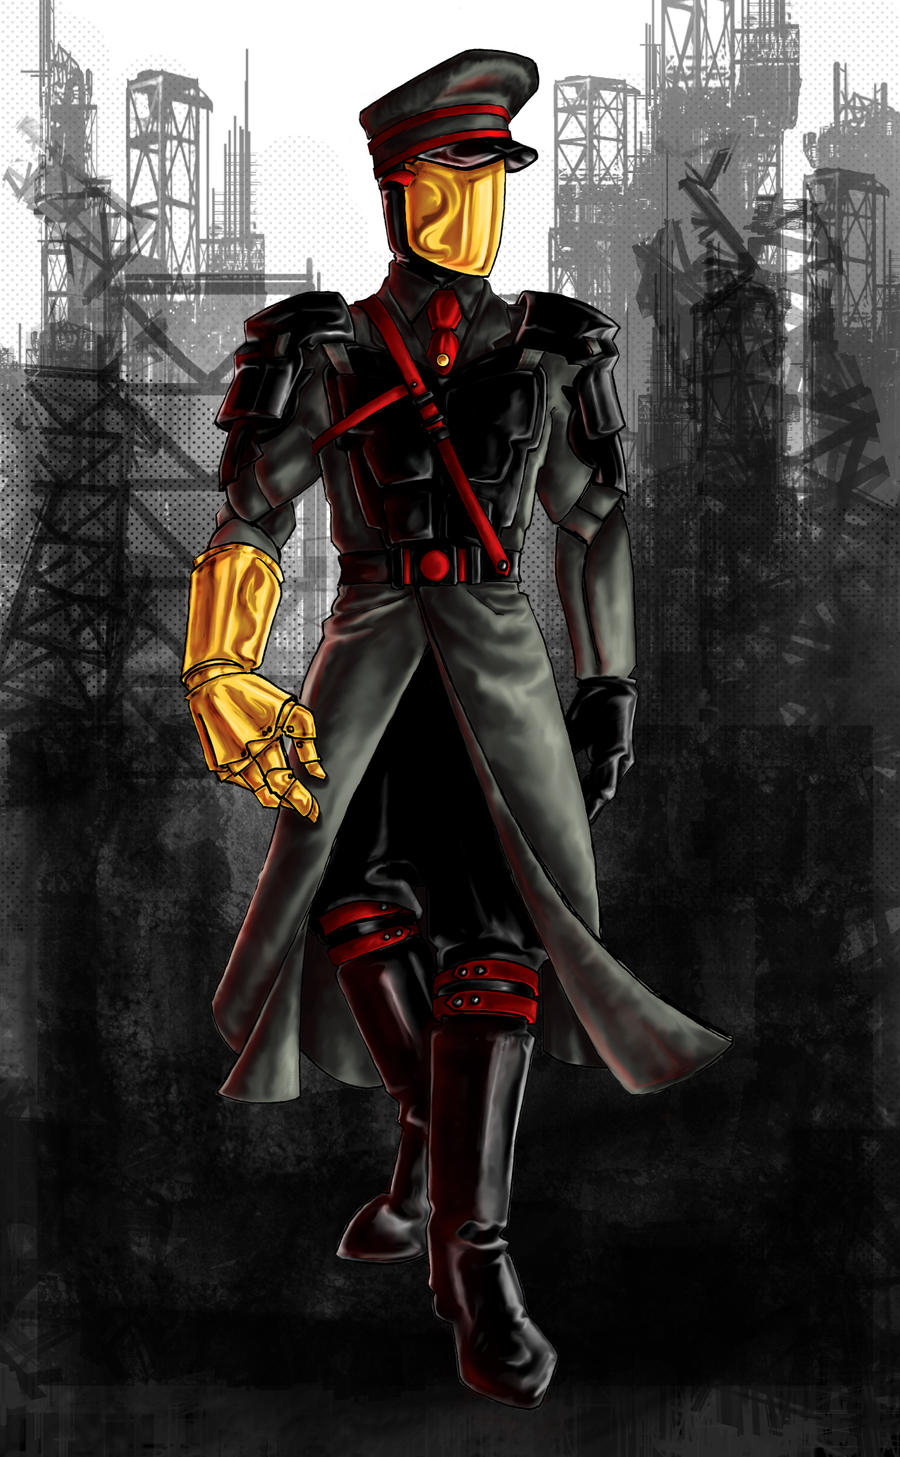 The Man with the Golden Glove by AgarthanGuide